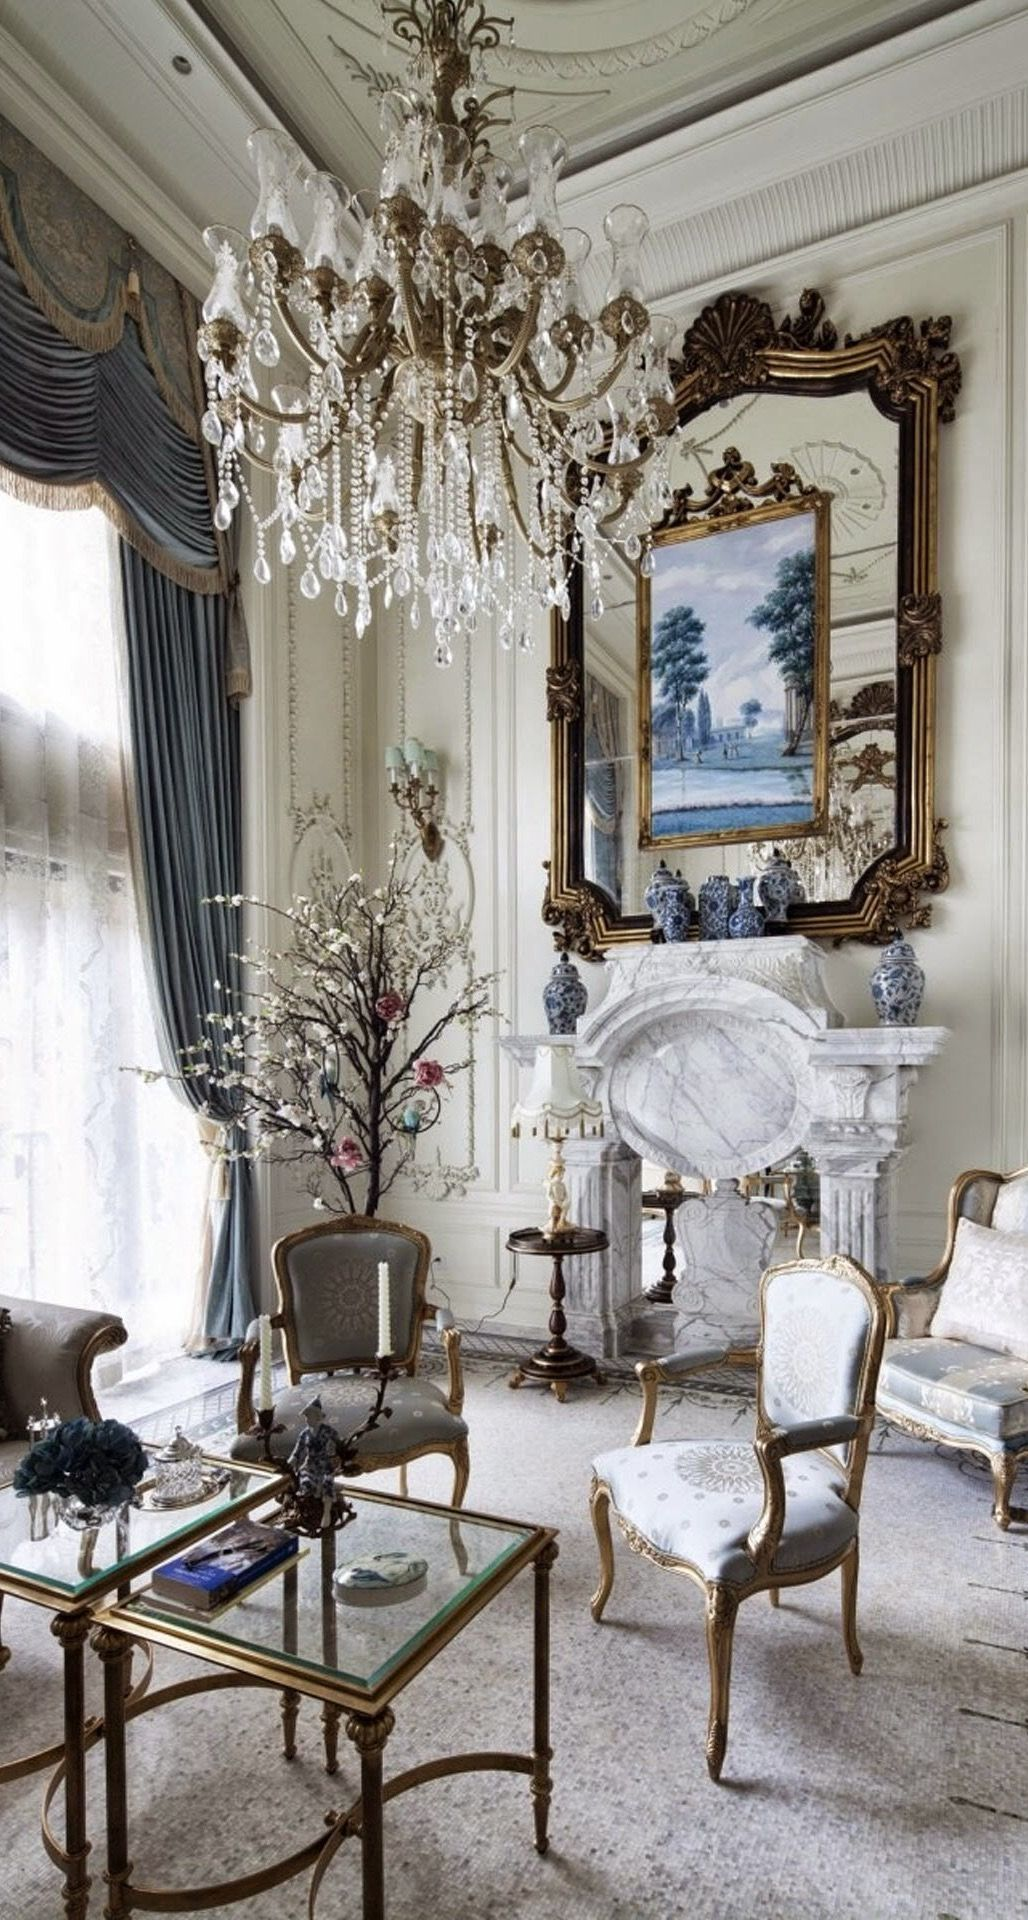 Pin By Girls Guide To Paris On Ideas For House French Country Decorating Living Room